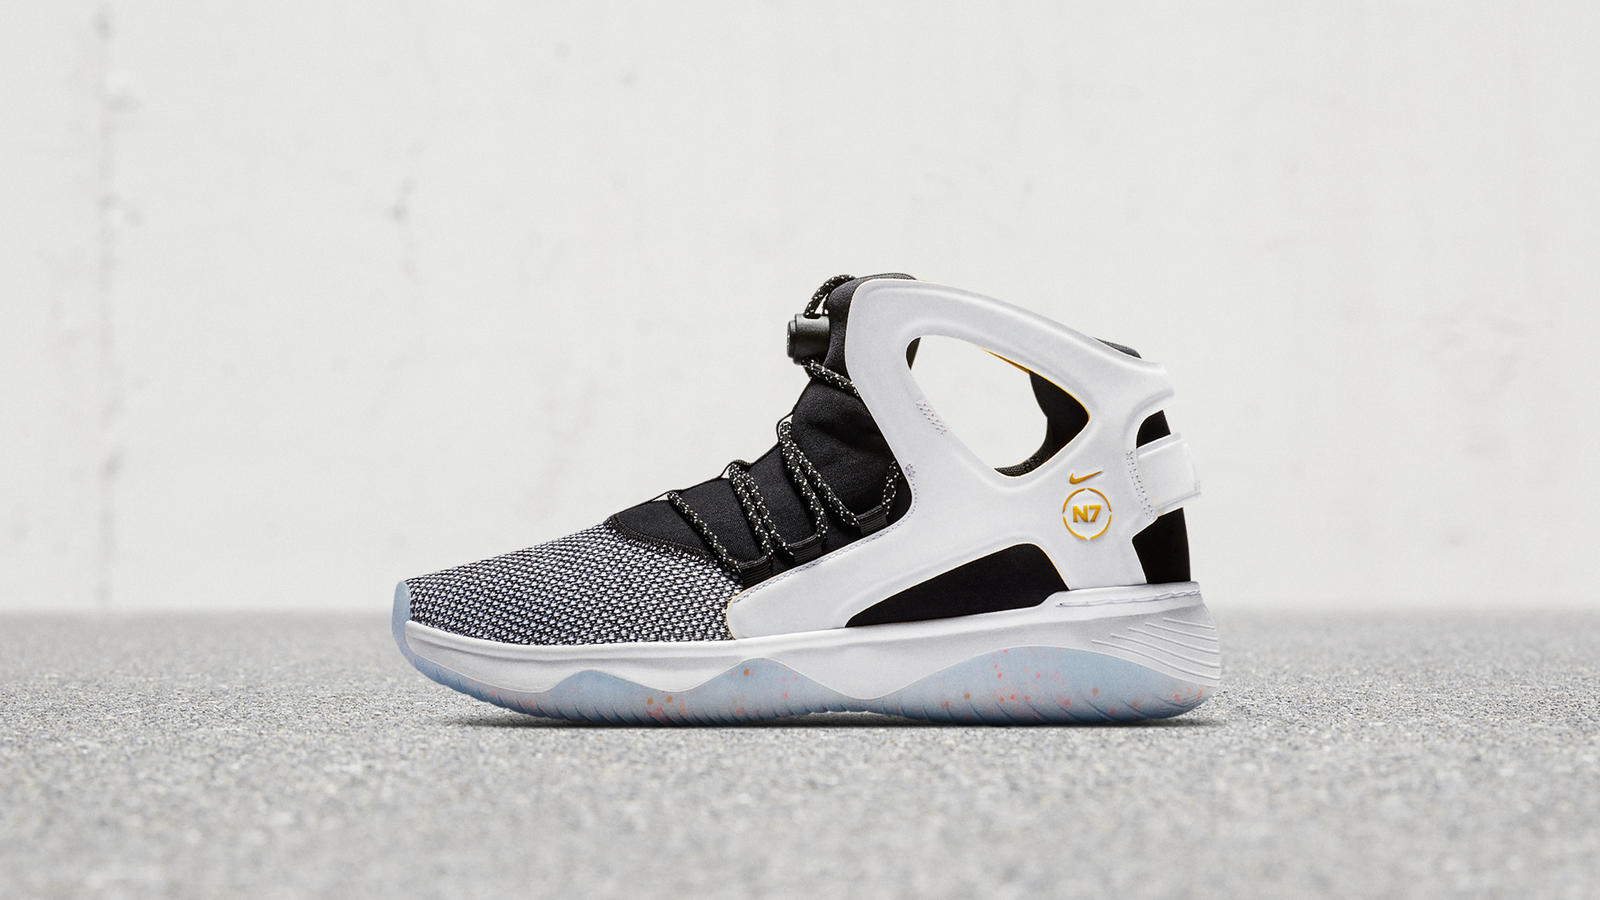 2fd416d0 Nike Air Flight Huarache Ultra N7 - Nike News